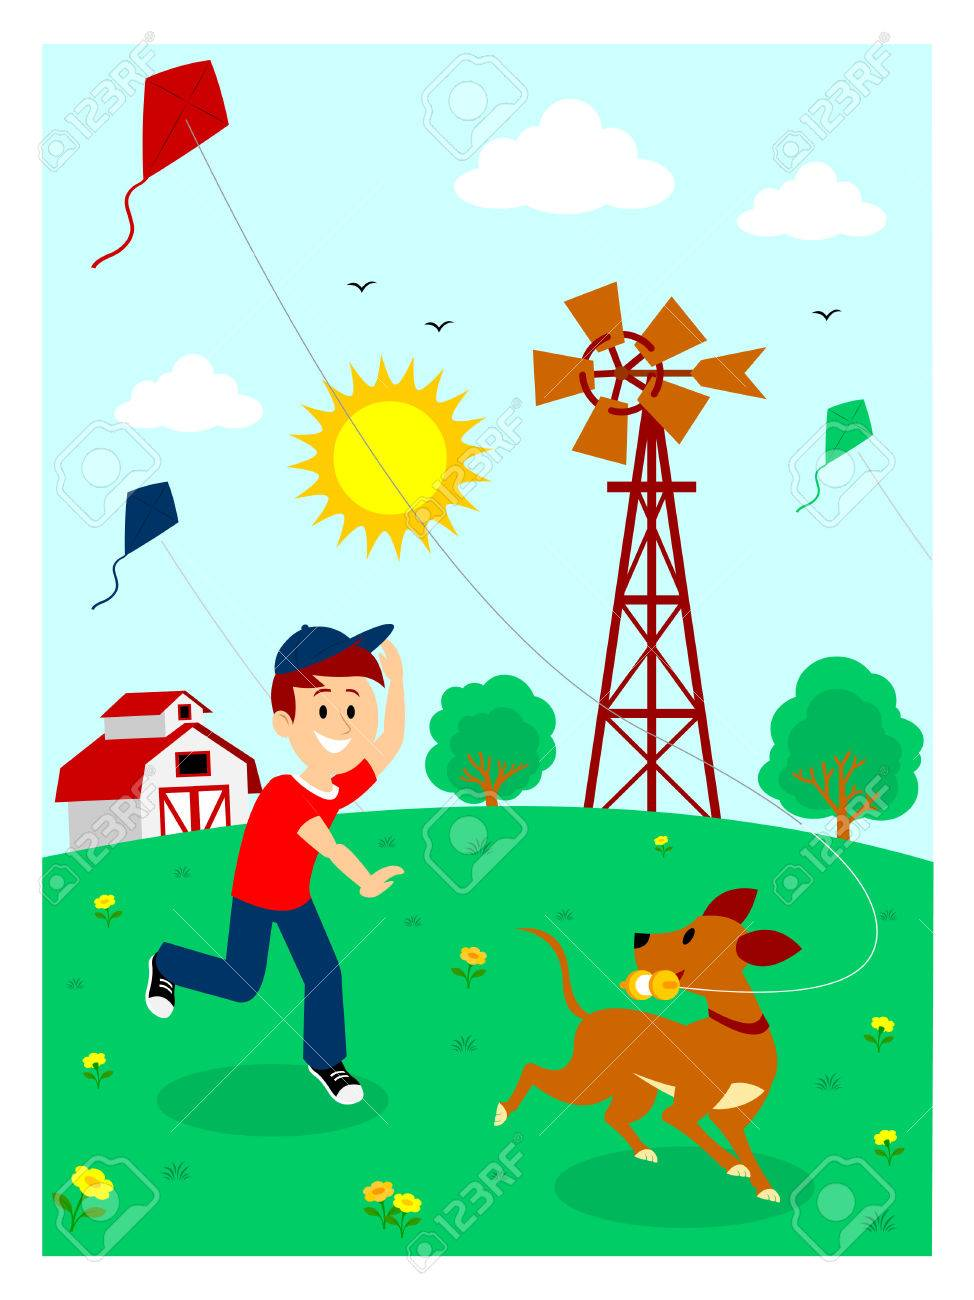 medium resolution of boy playing kite with his dog clipart stock vector 57577100